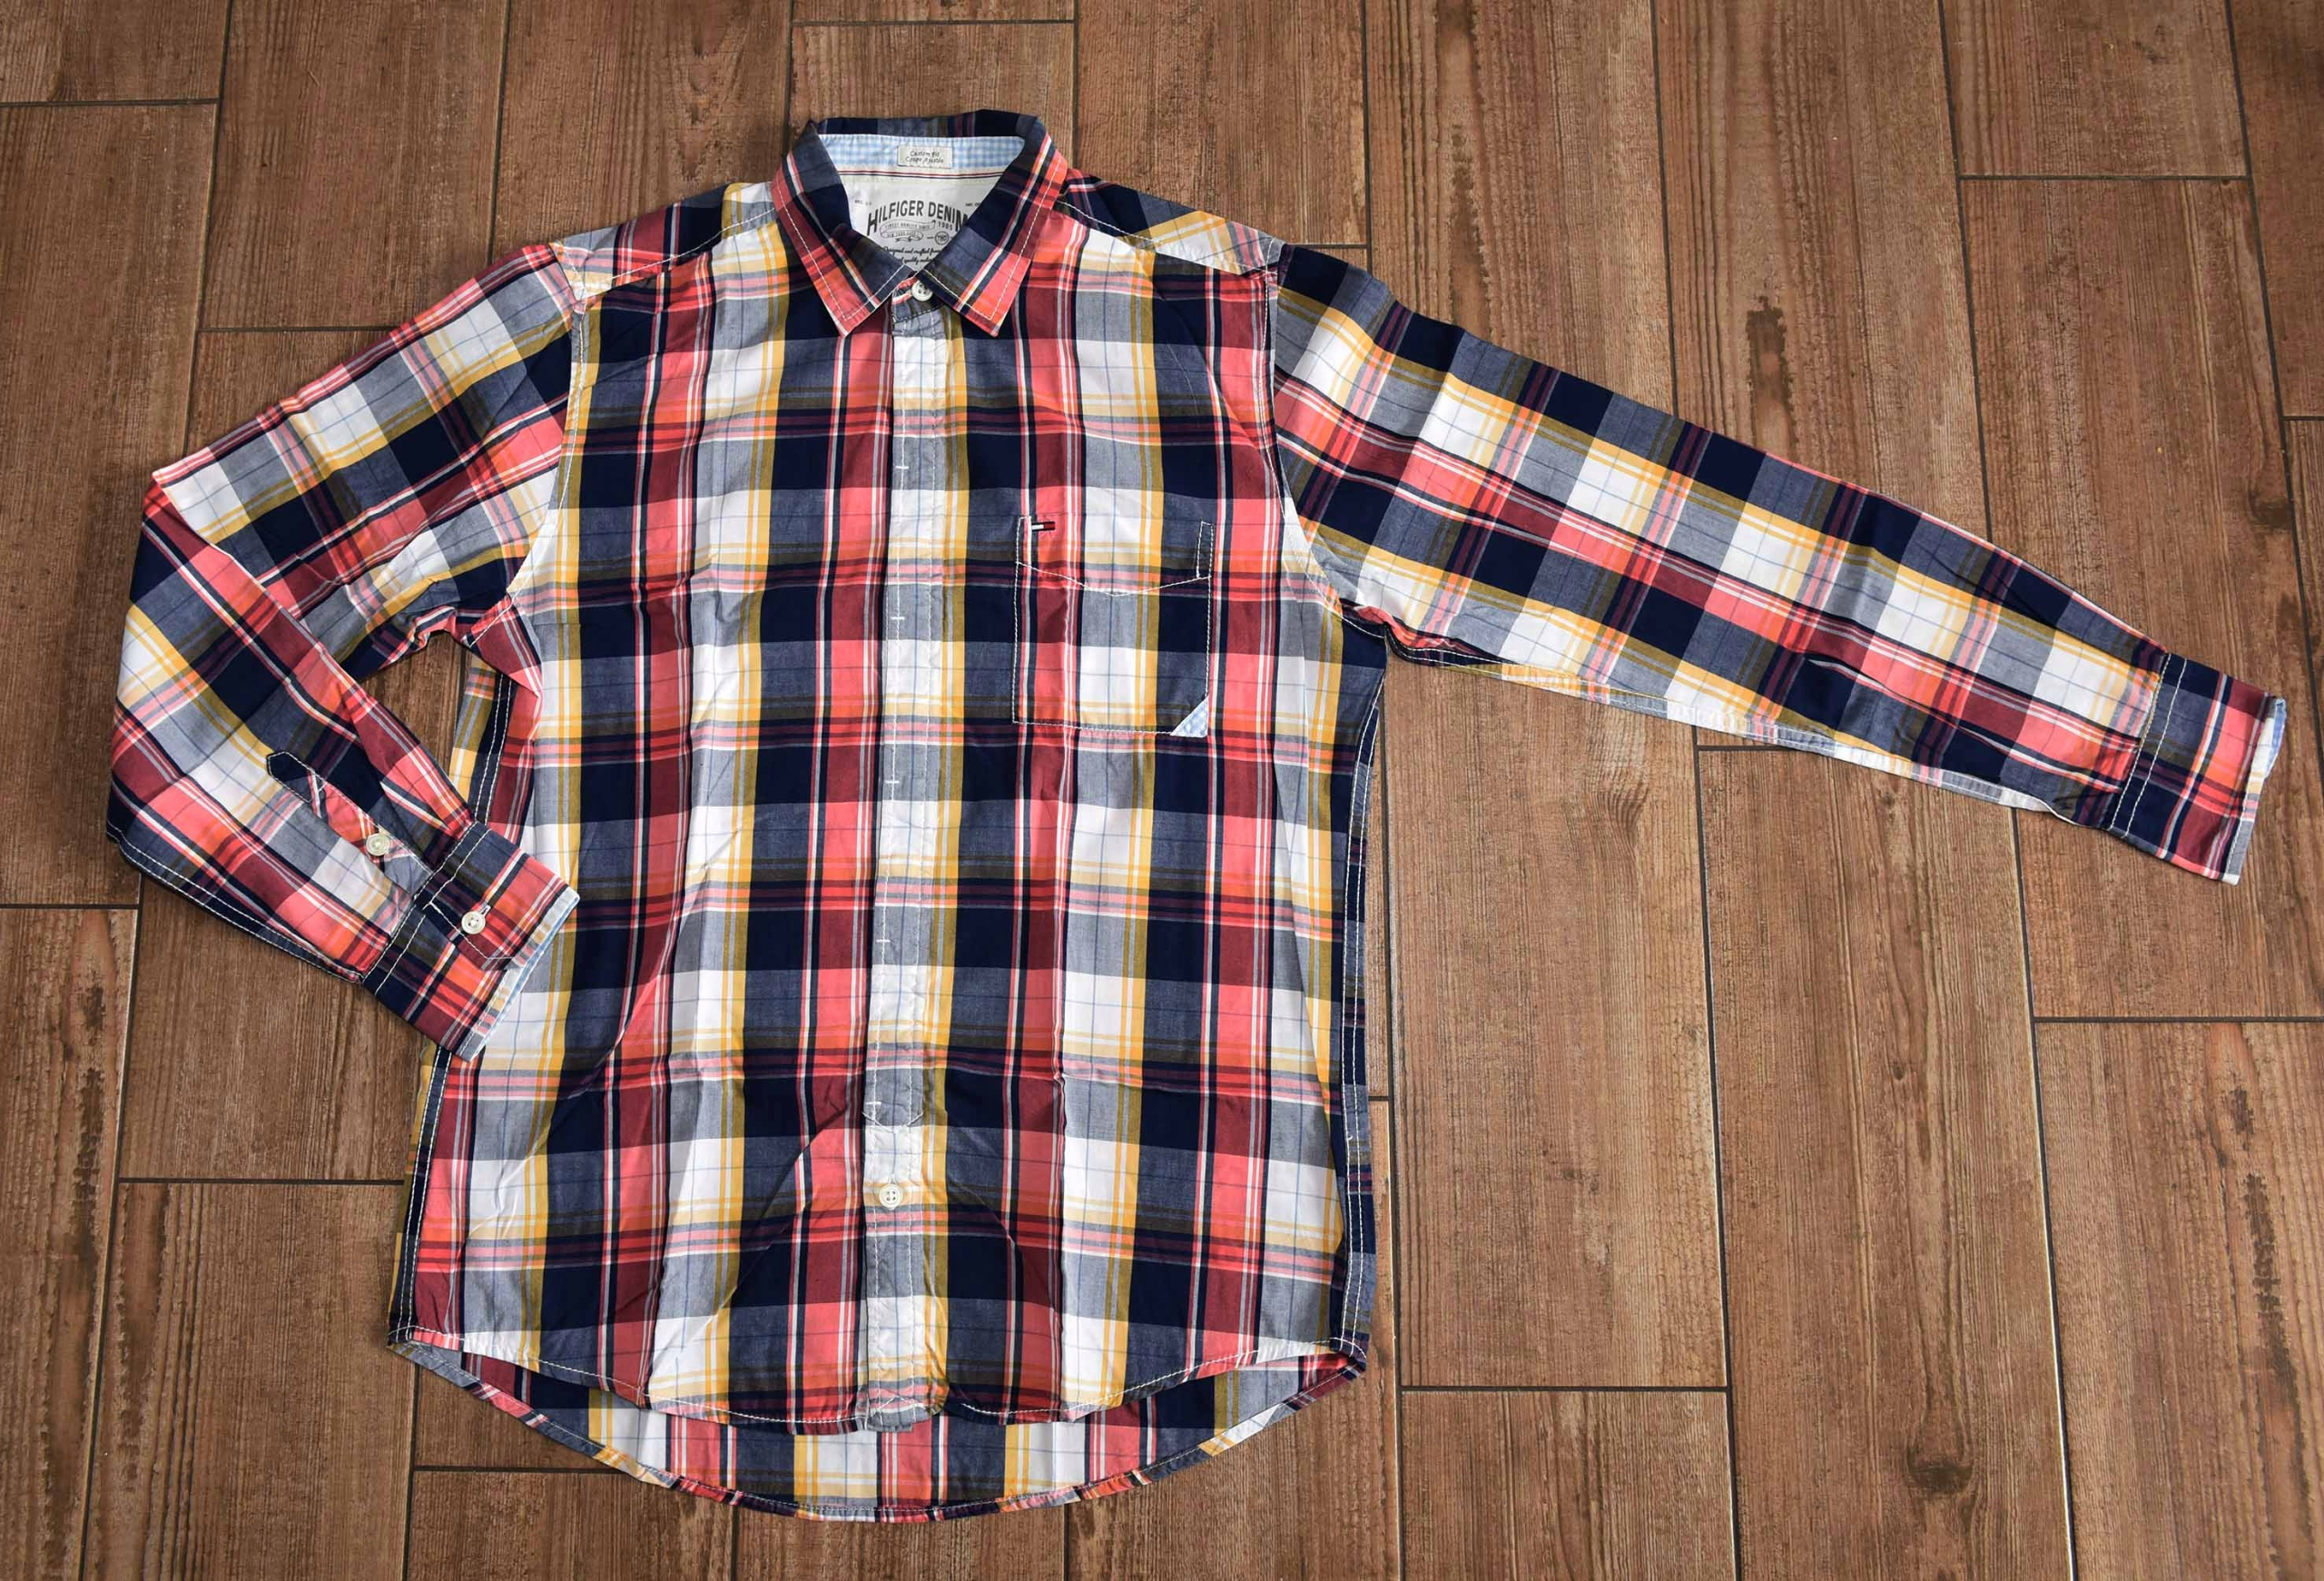 Tommy Hilfigner __mens shirt / R. M